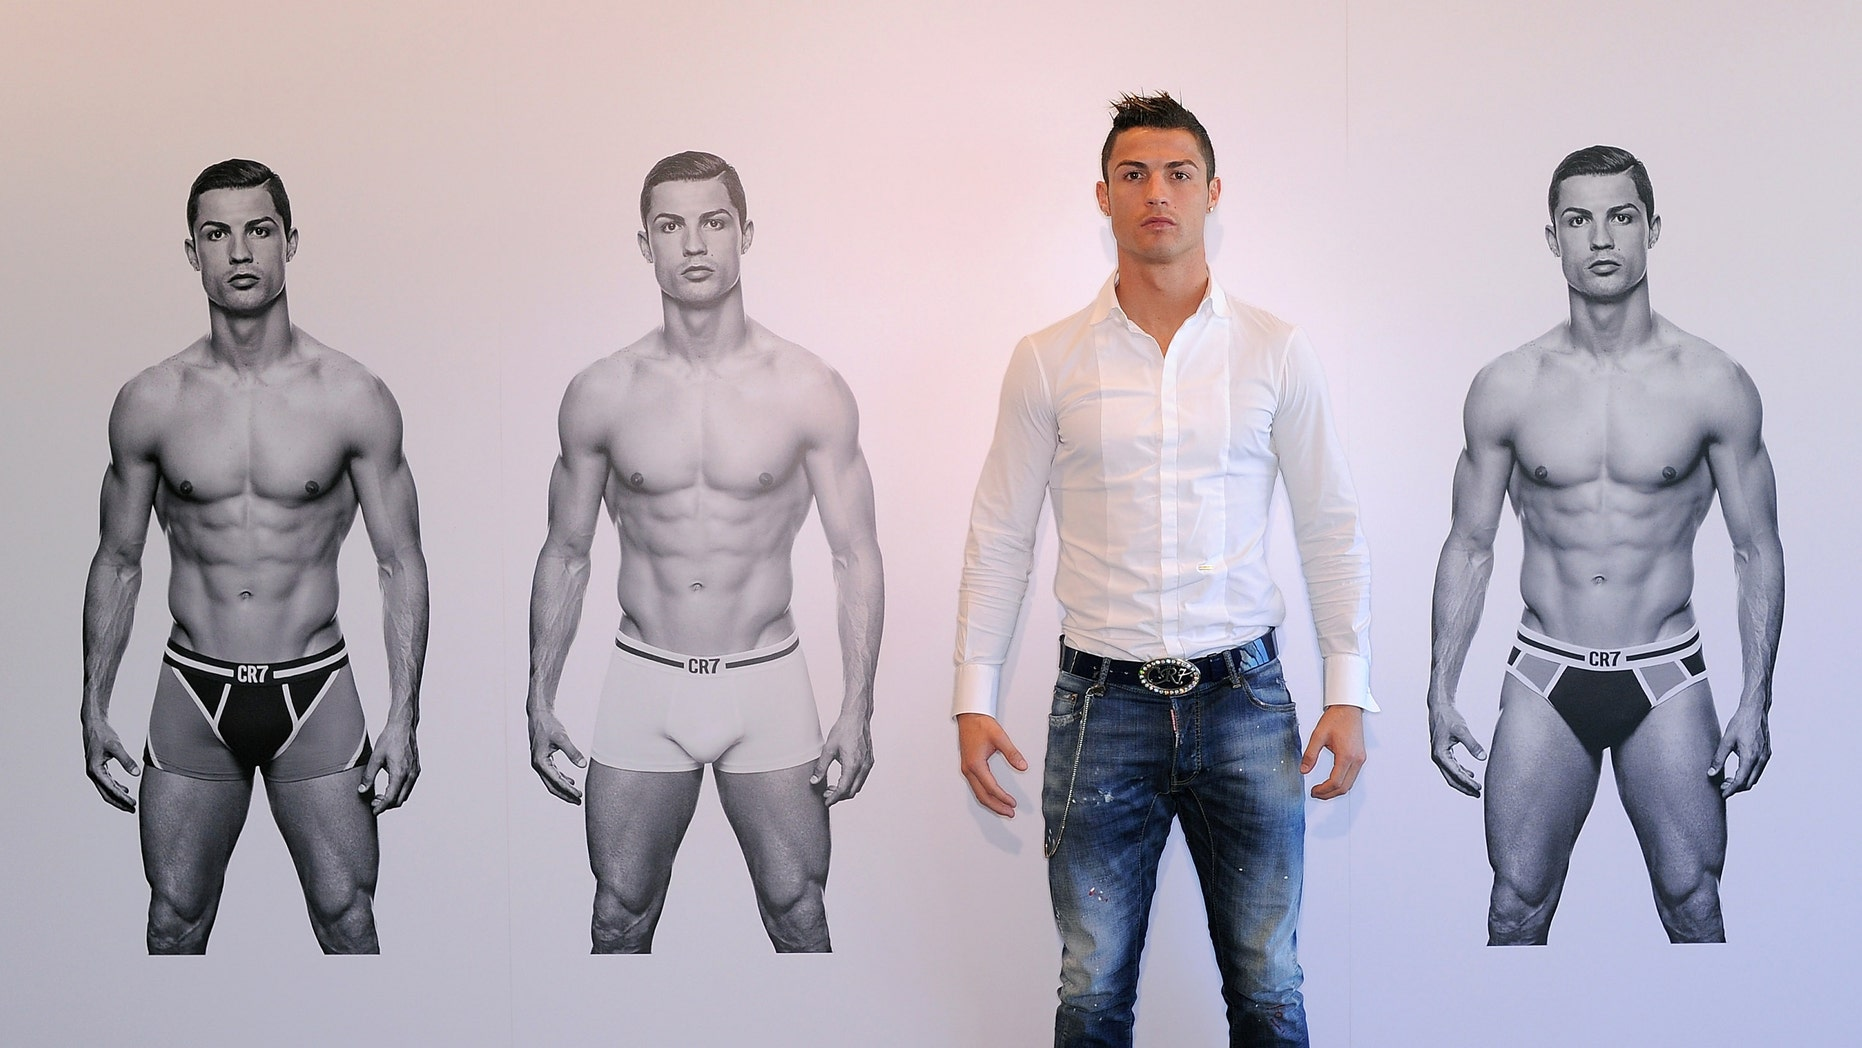 Cristiano Ronaldo launched his CR7 underwear line on October 31, 2013 in Madrid, Spain.